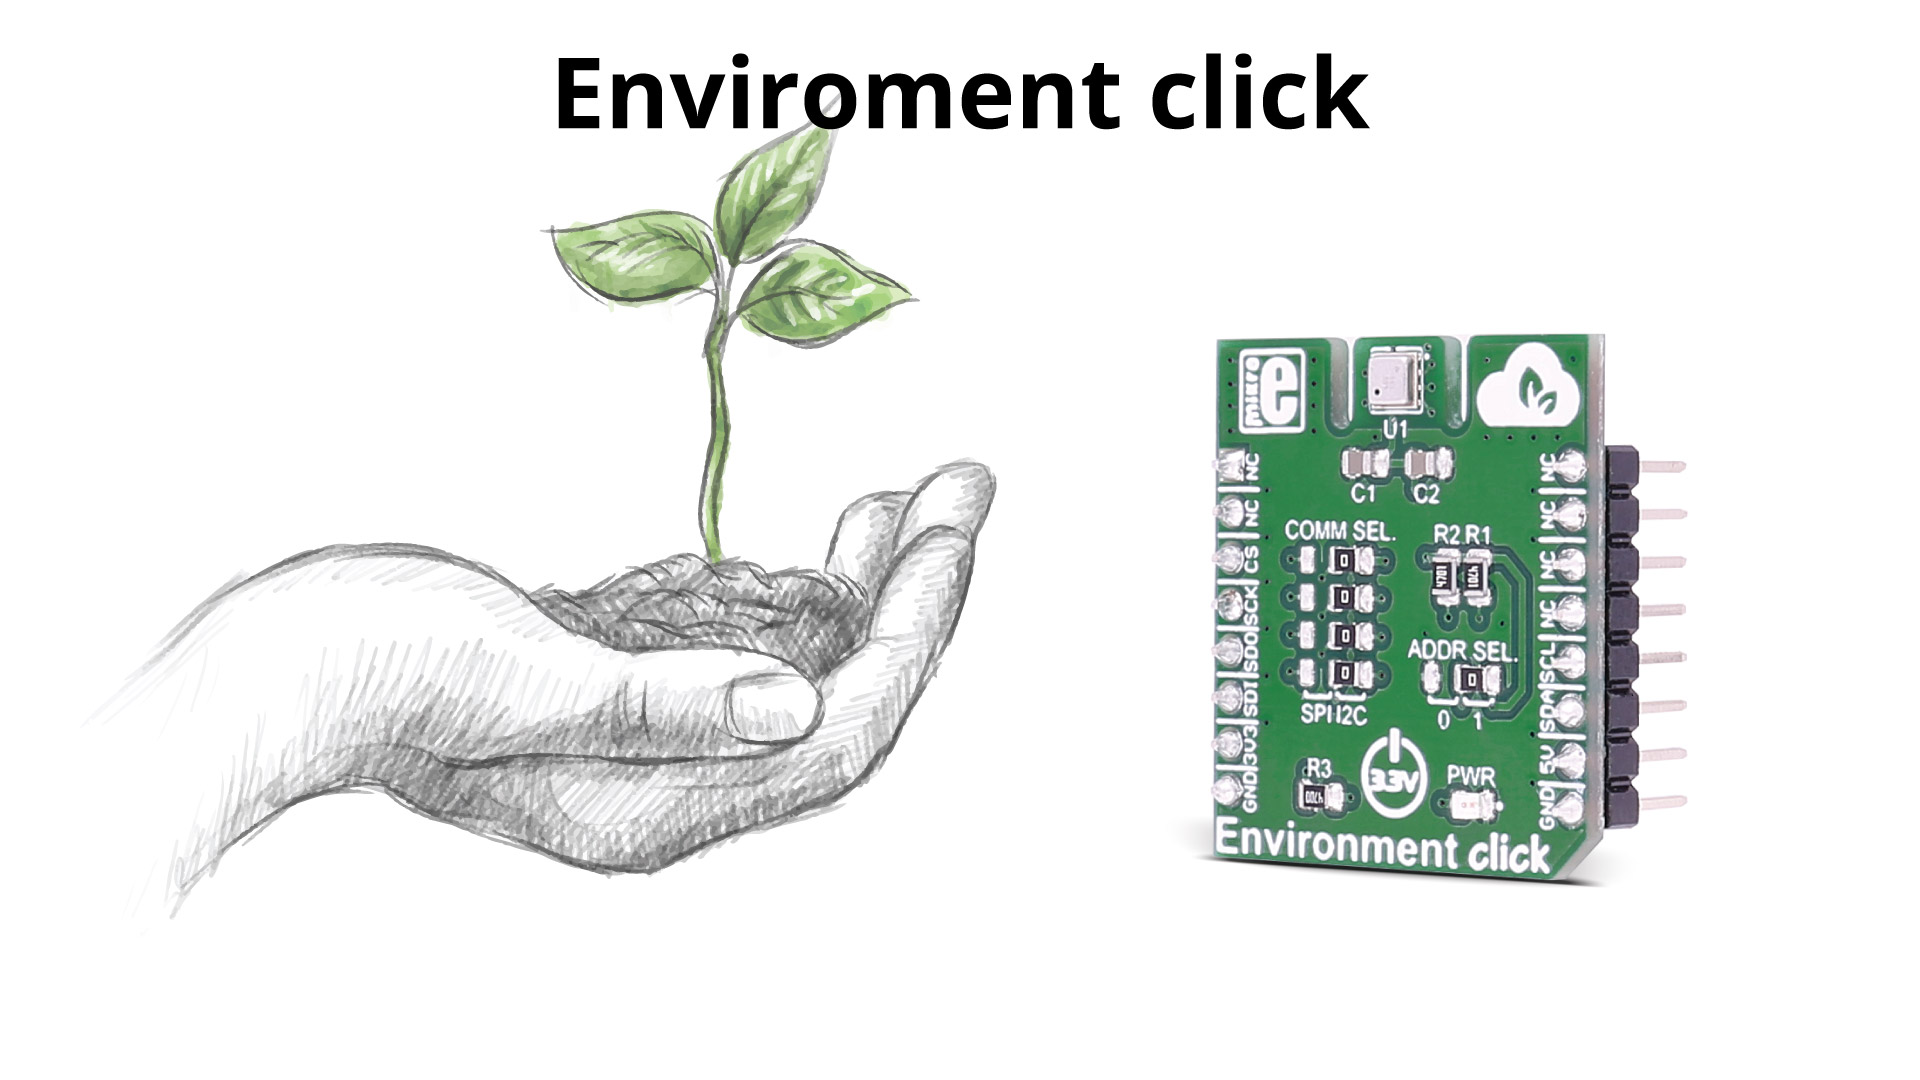 Environment click - air quality, temperature, relative humidity, and pressure